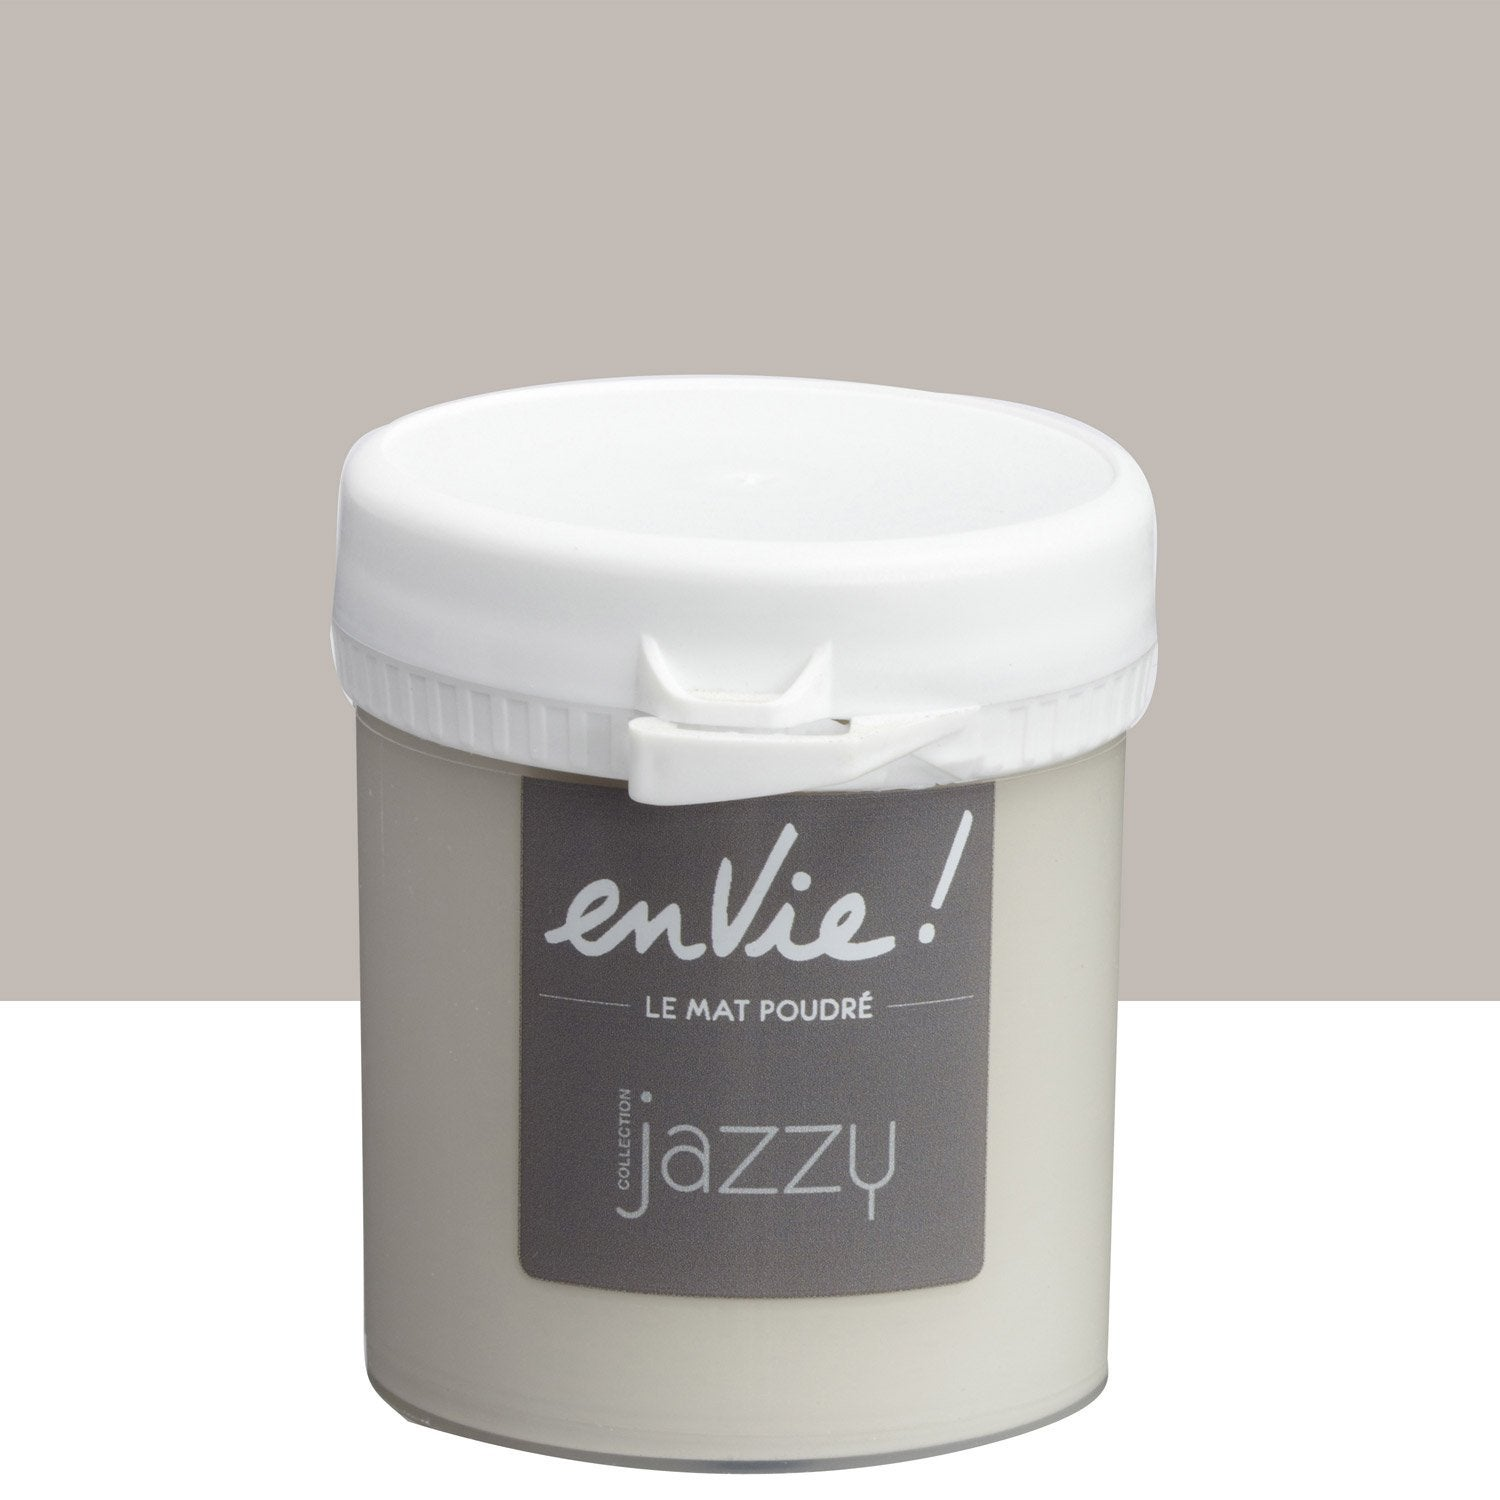 Testeur peinture gris smart luxens envie collection jazzy l leroy merlin - Peinture envie leroy merlin ...